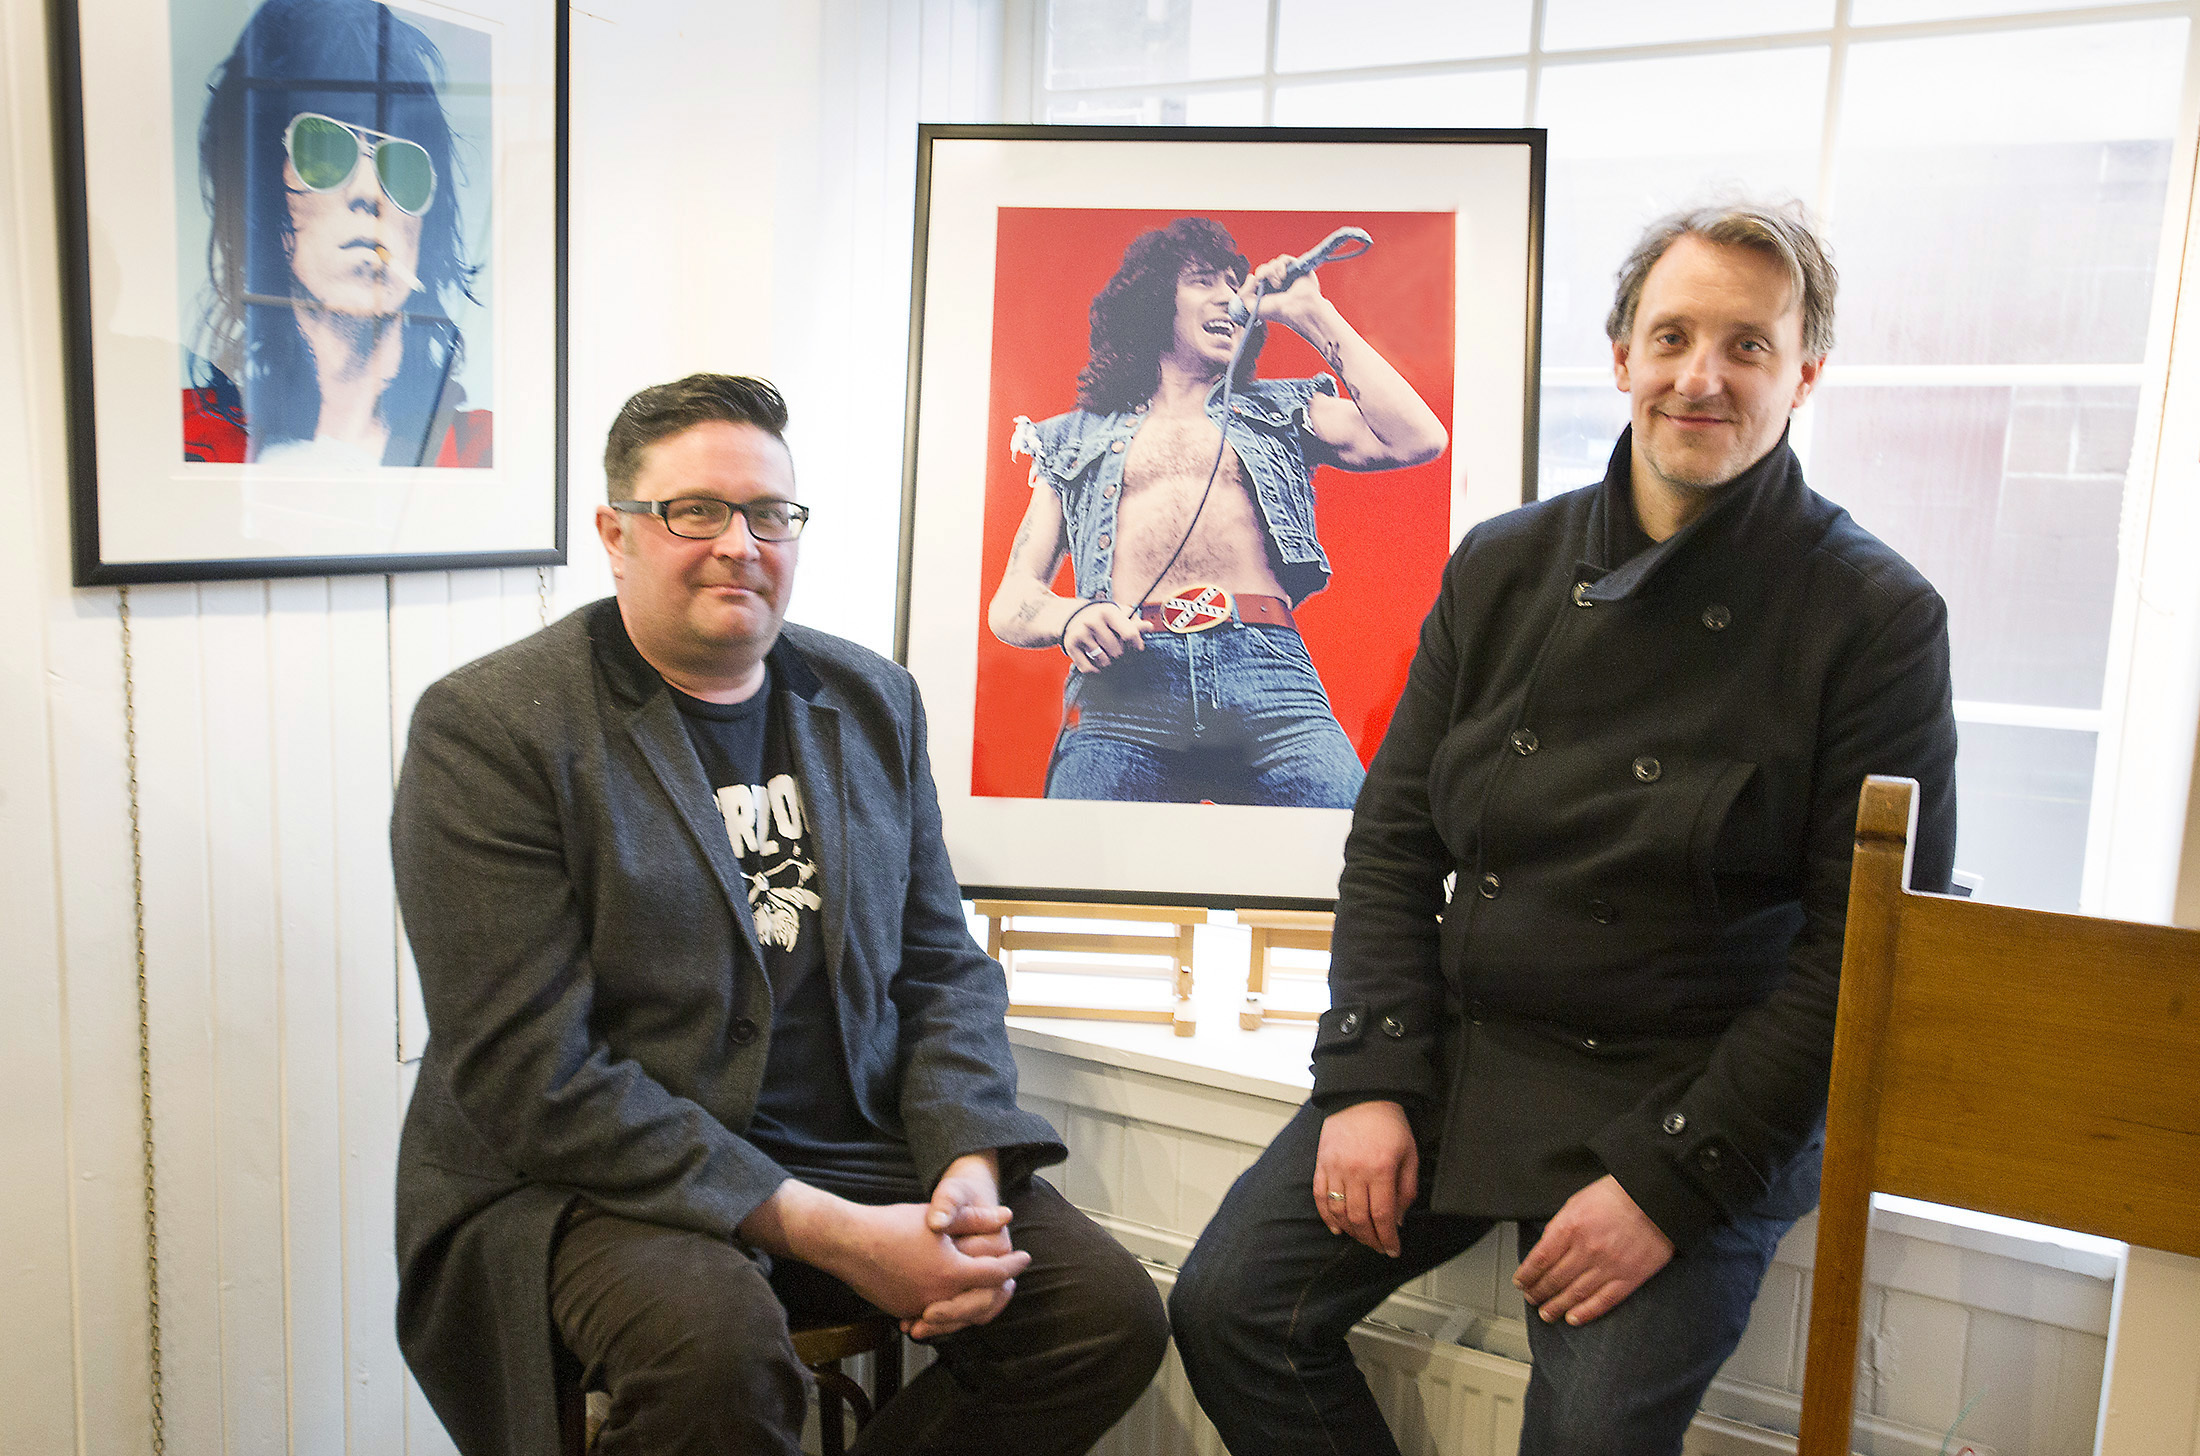 DD8 Music's Graham Galloway with Robert McSpadyen and his Bon Scott image.